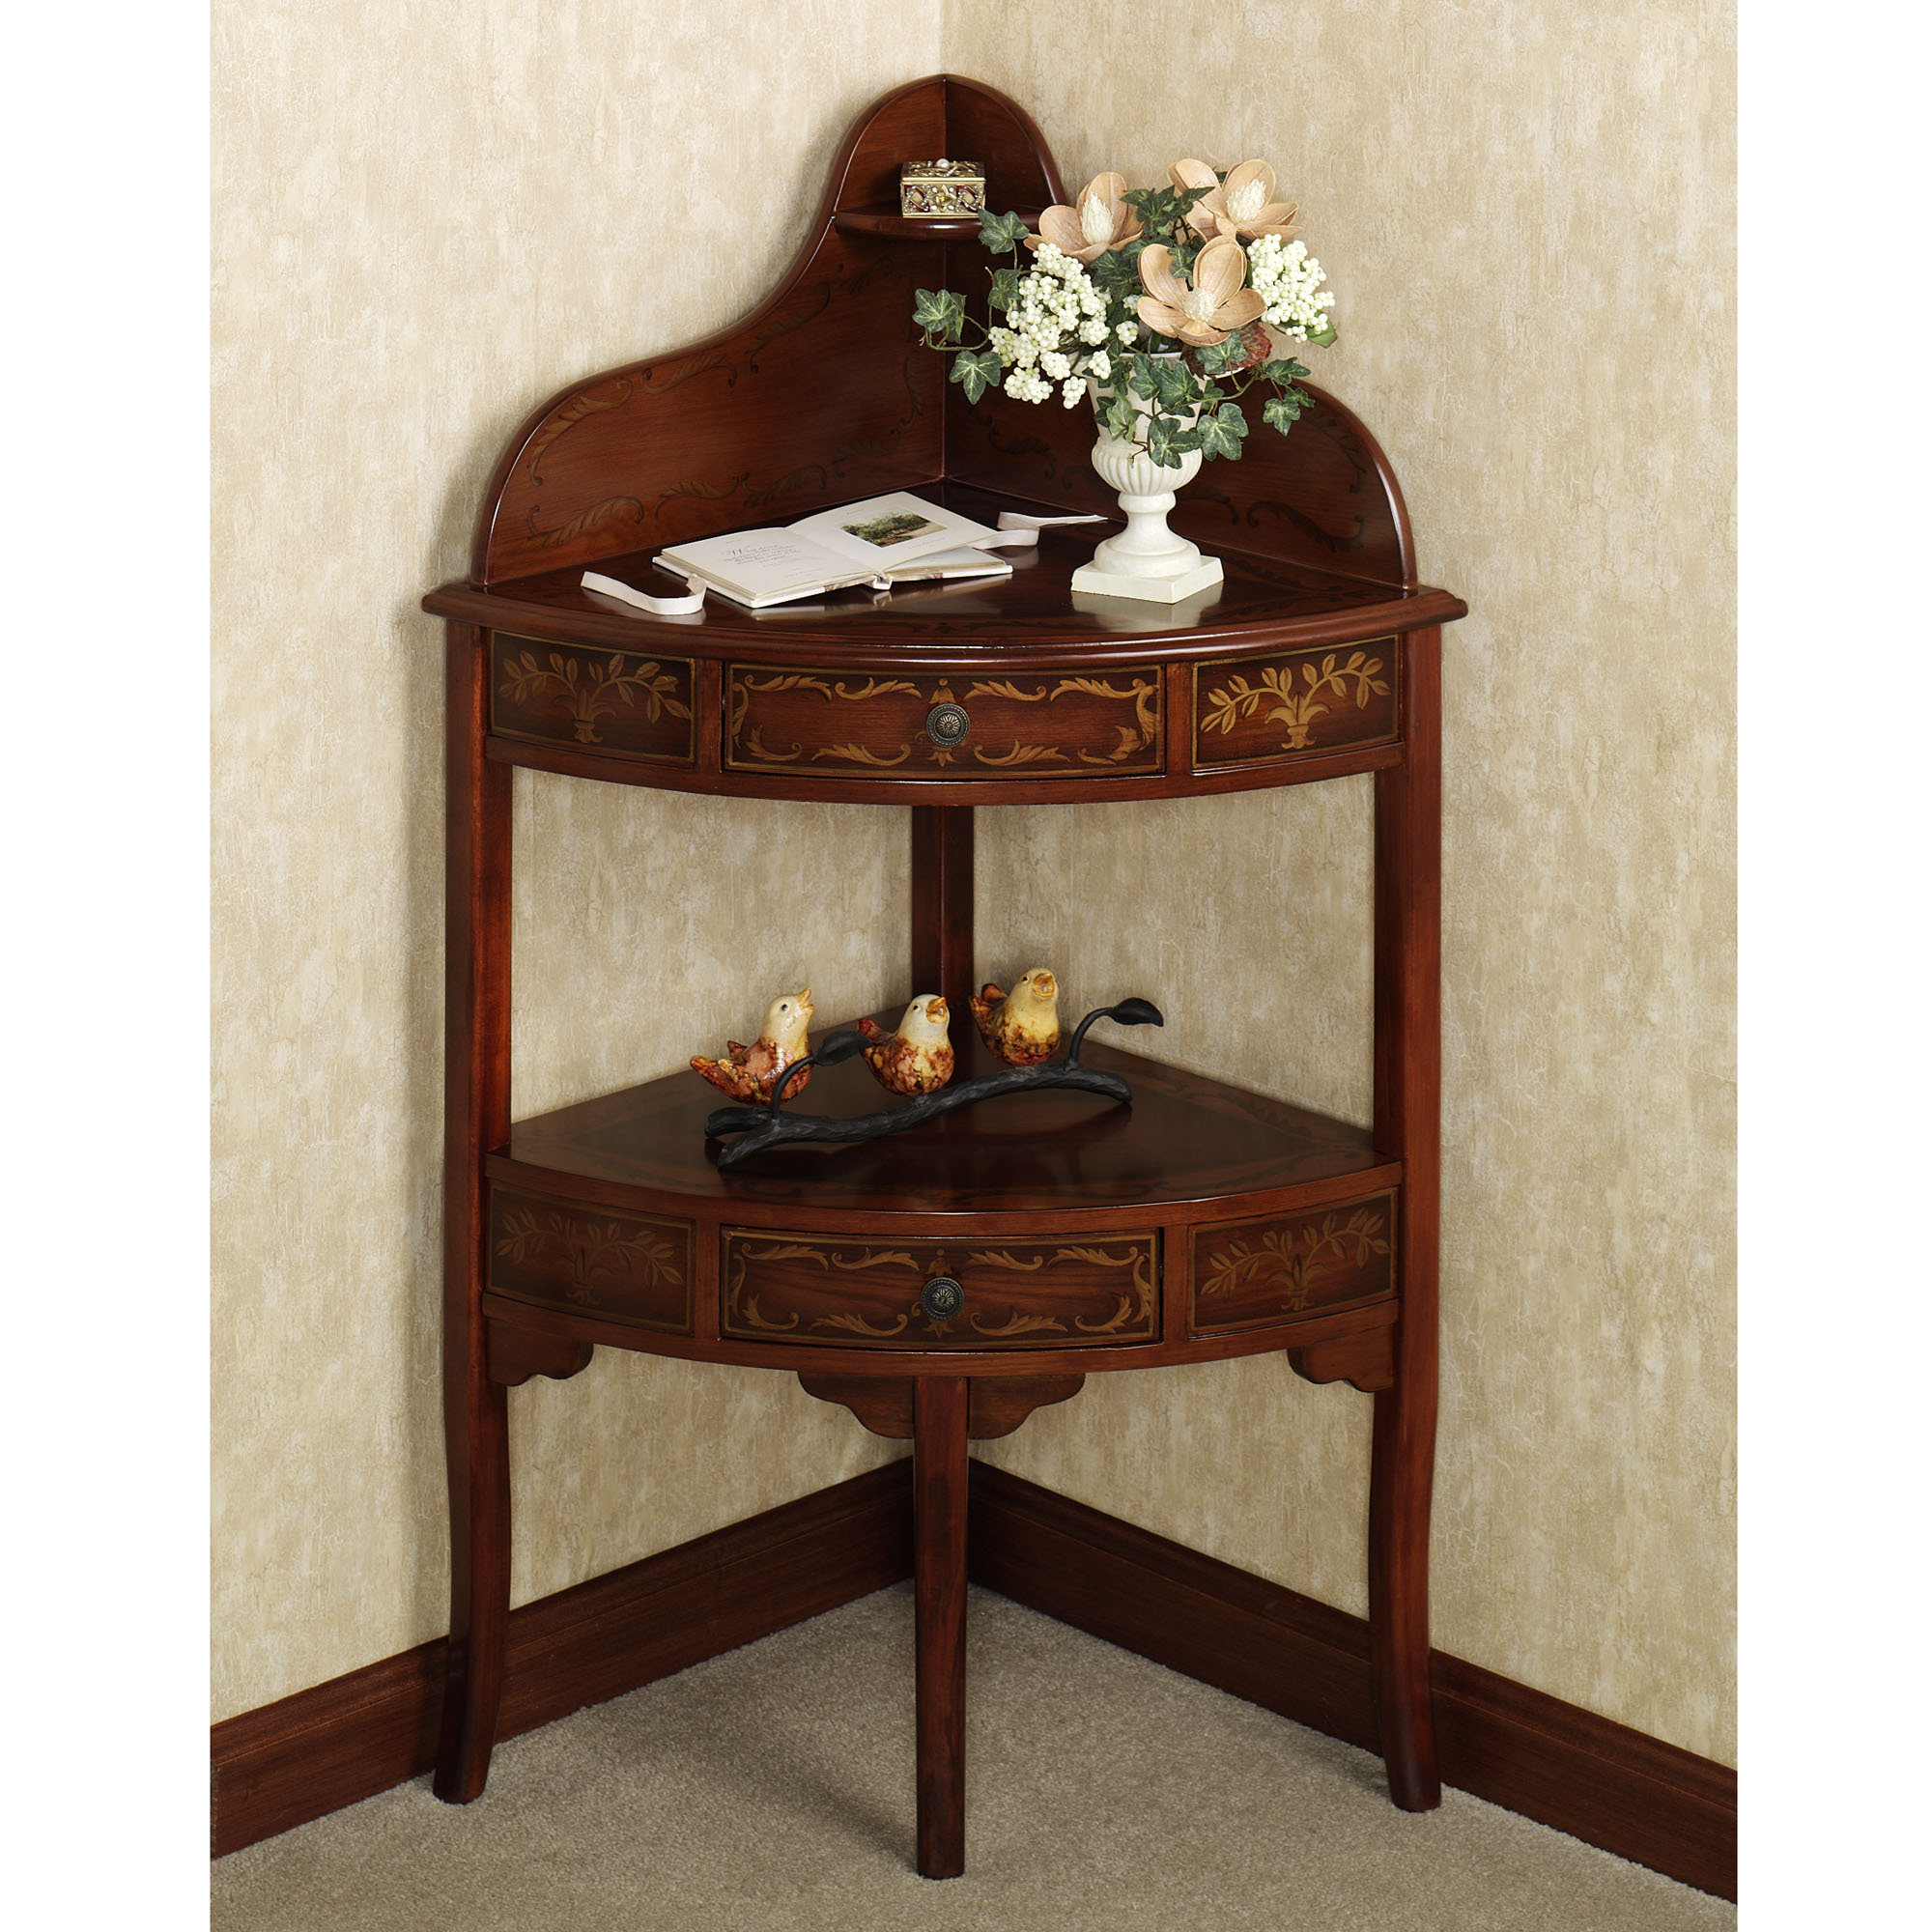 popular corner accent table with furniture bobreuterstl mosaic garden small round patio black kitchen and chairs pottery barn floor transitions for uneven floors drum shaped side